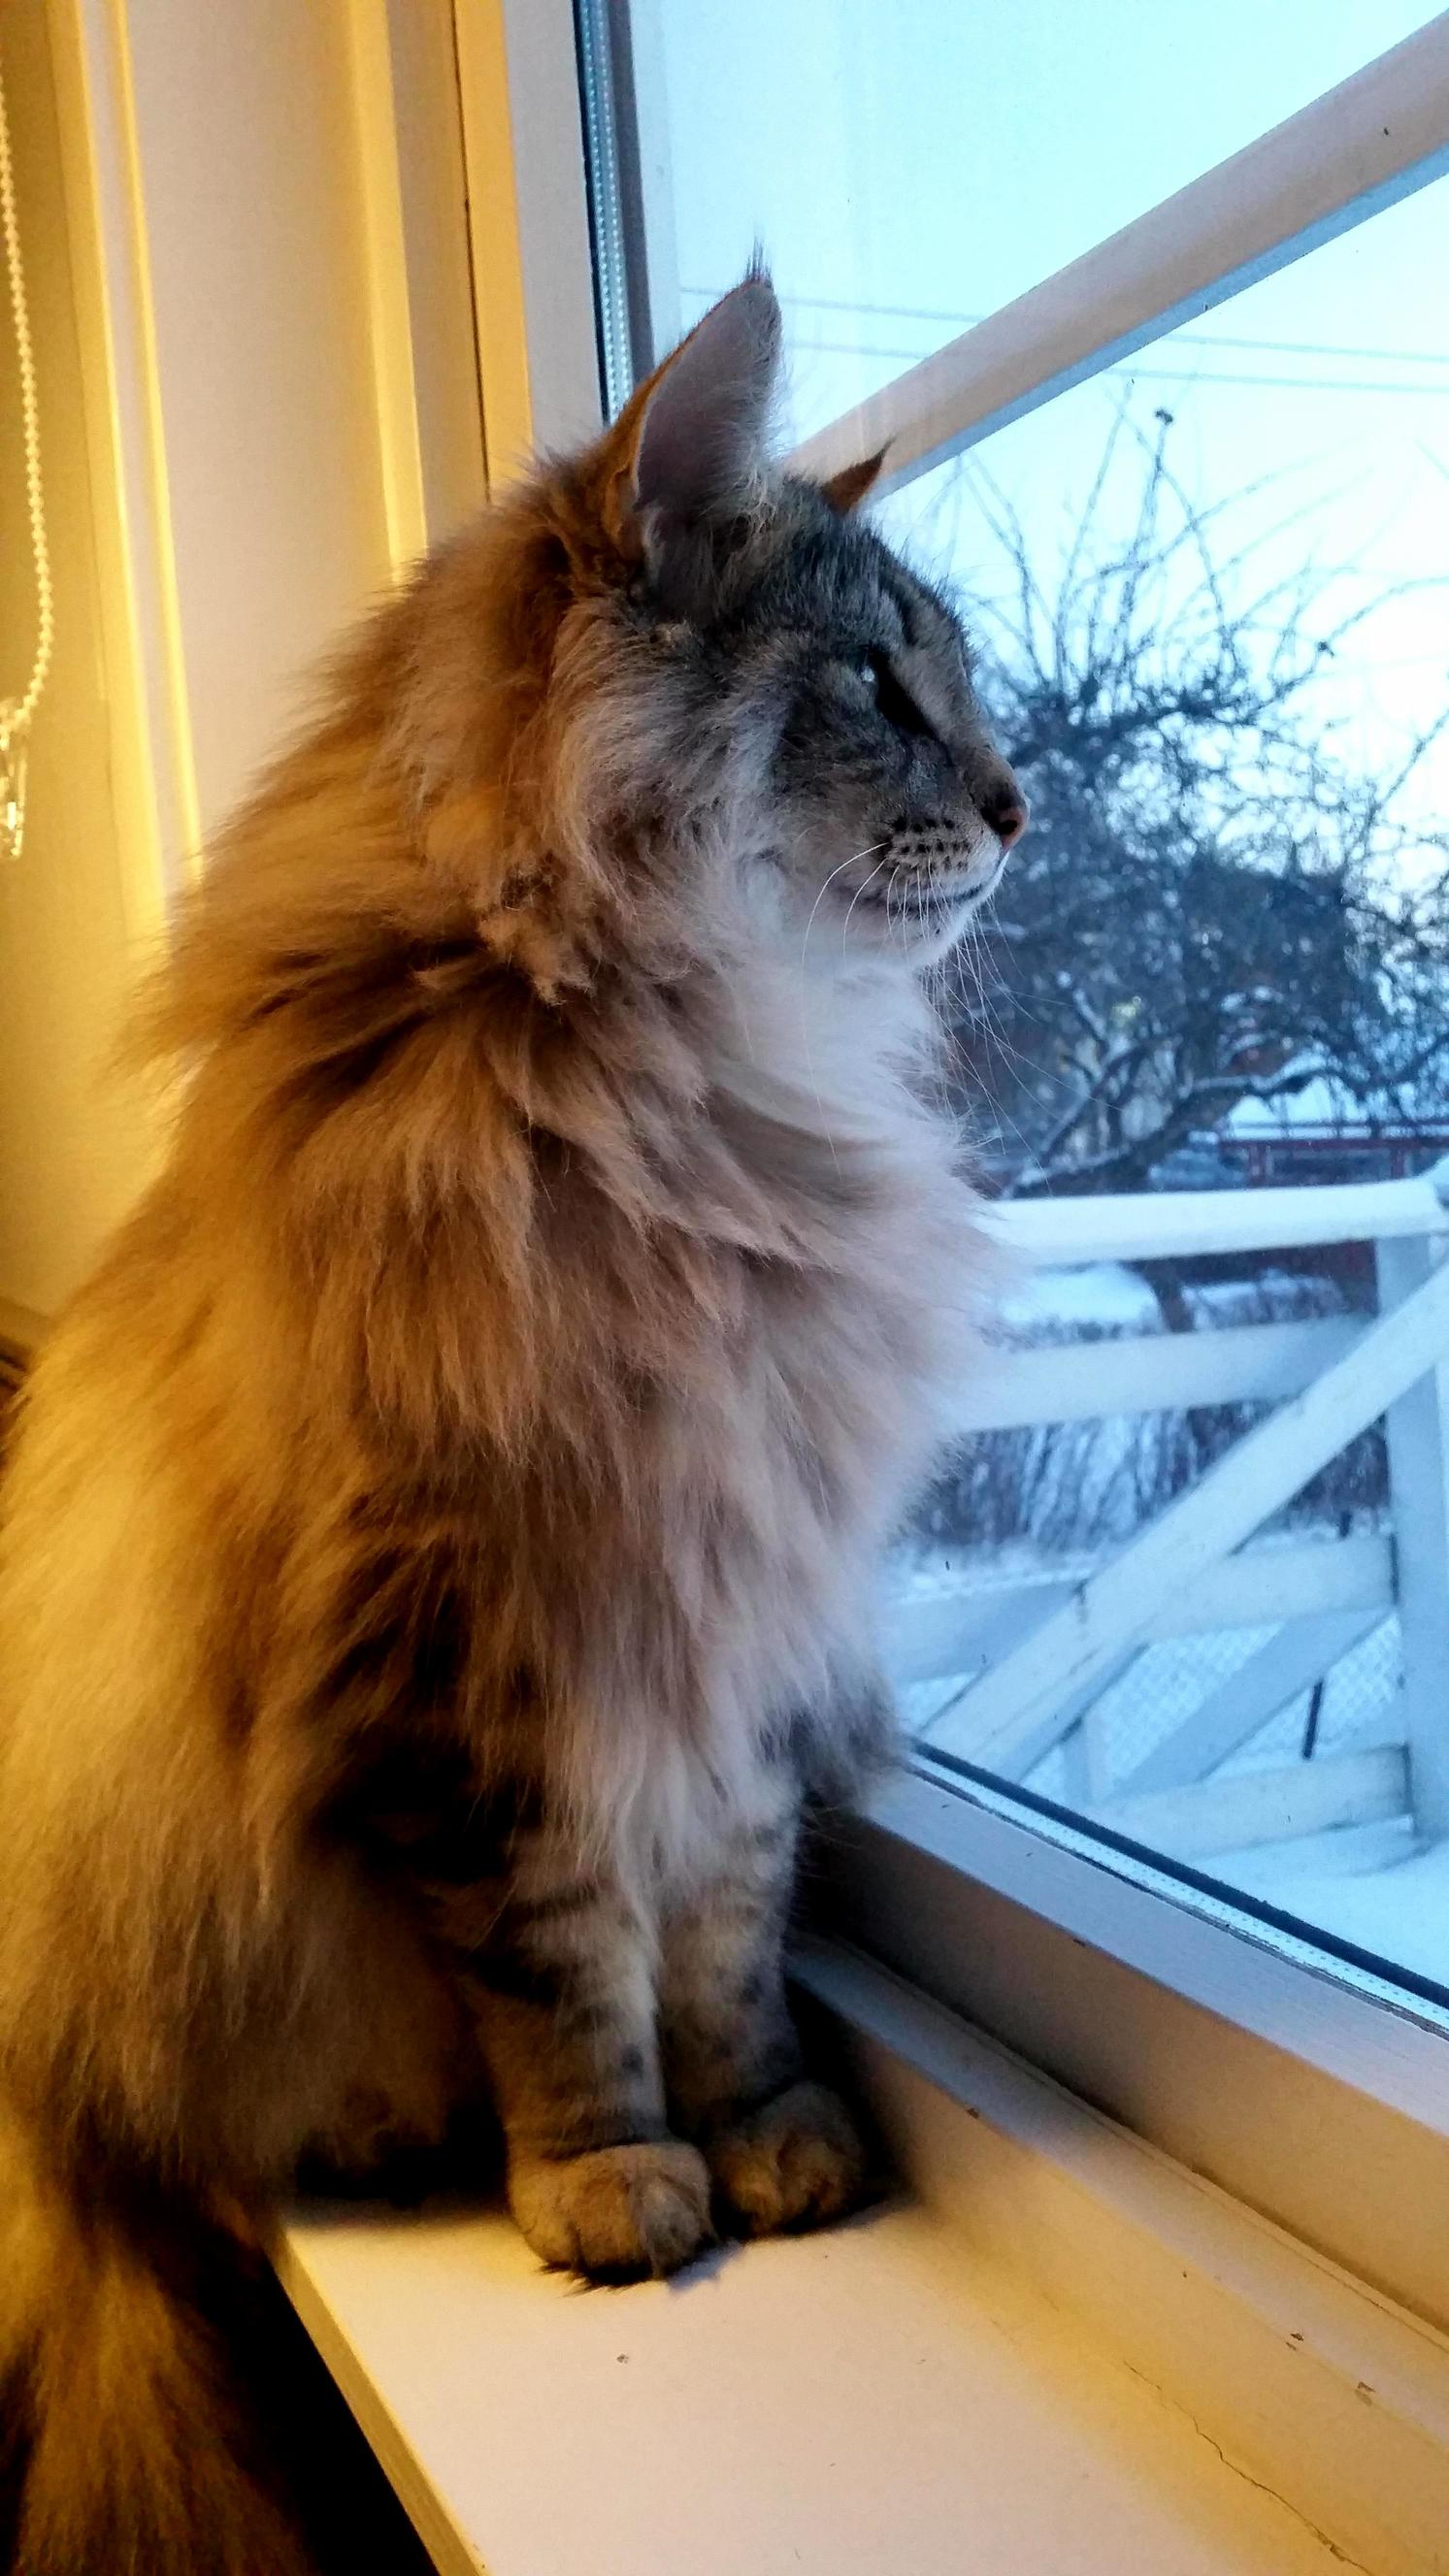 He likes to sit in my window during the winter.